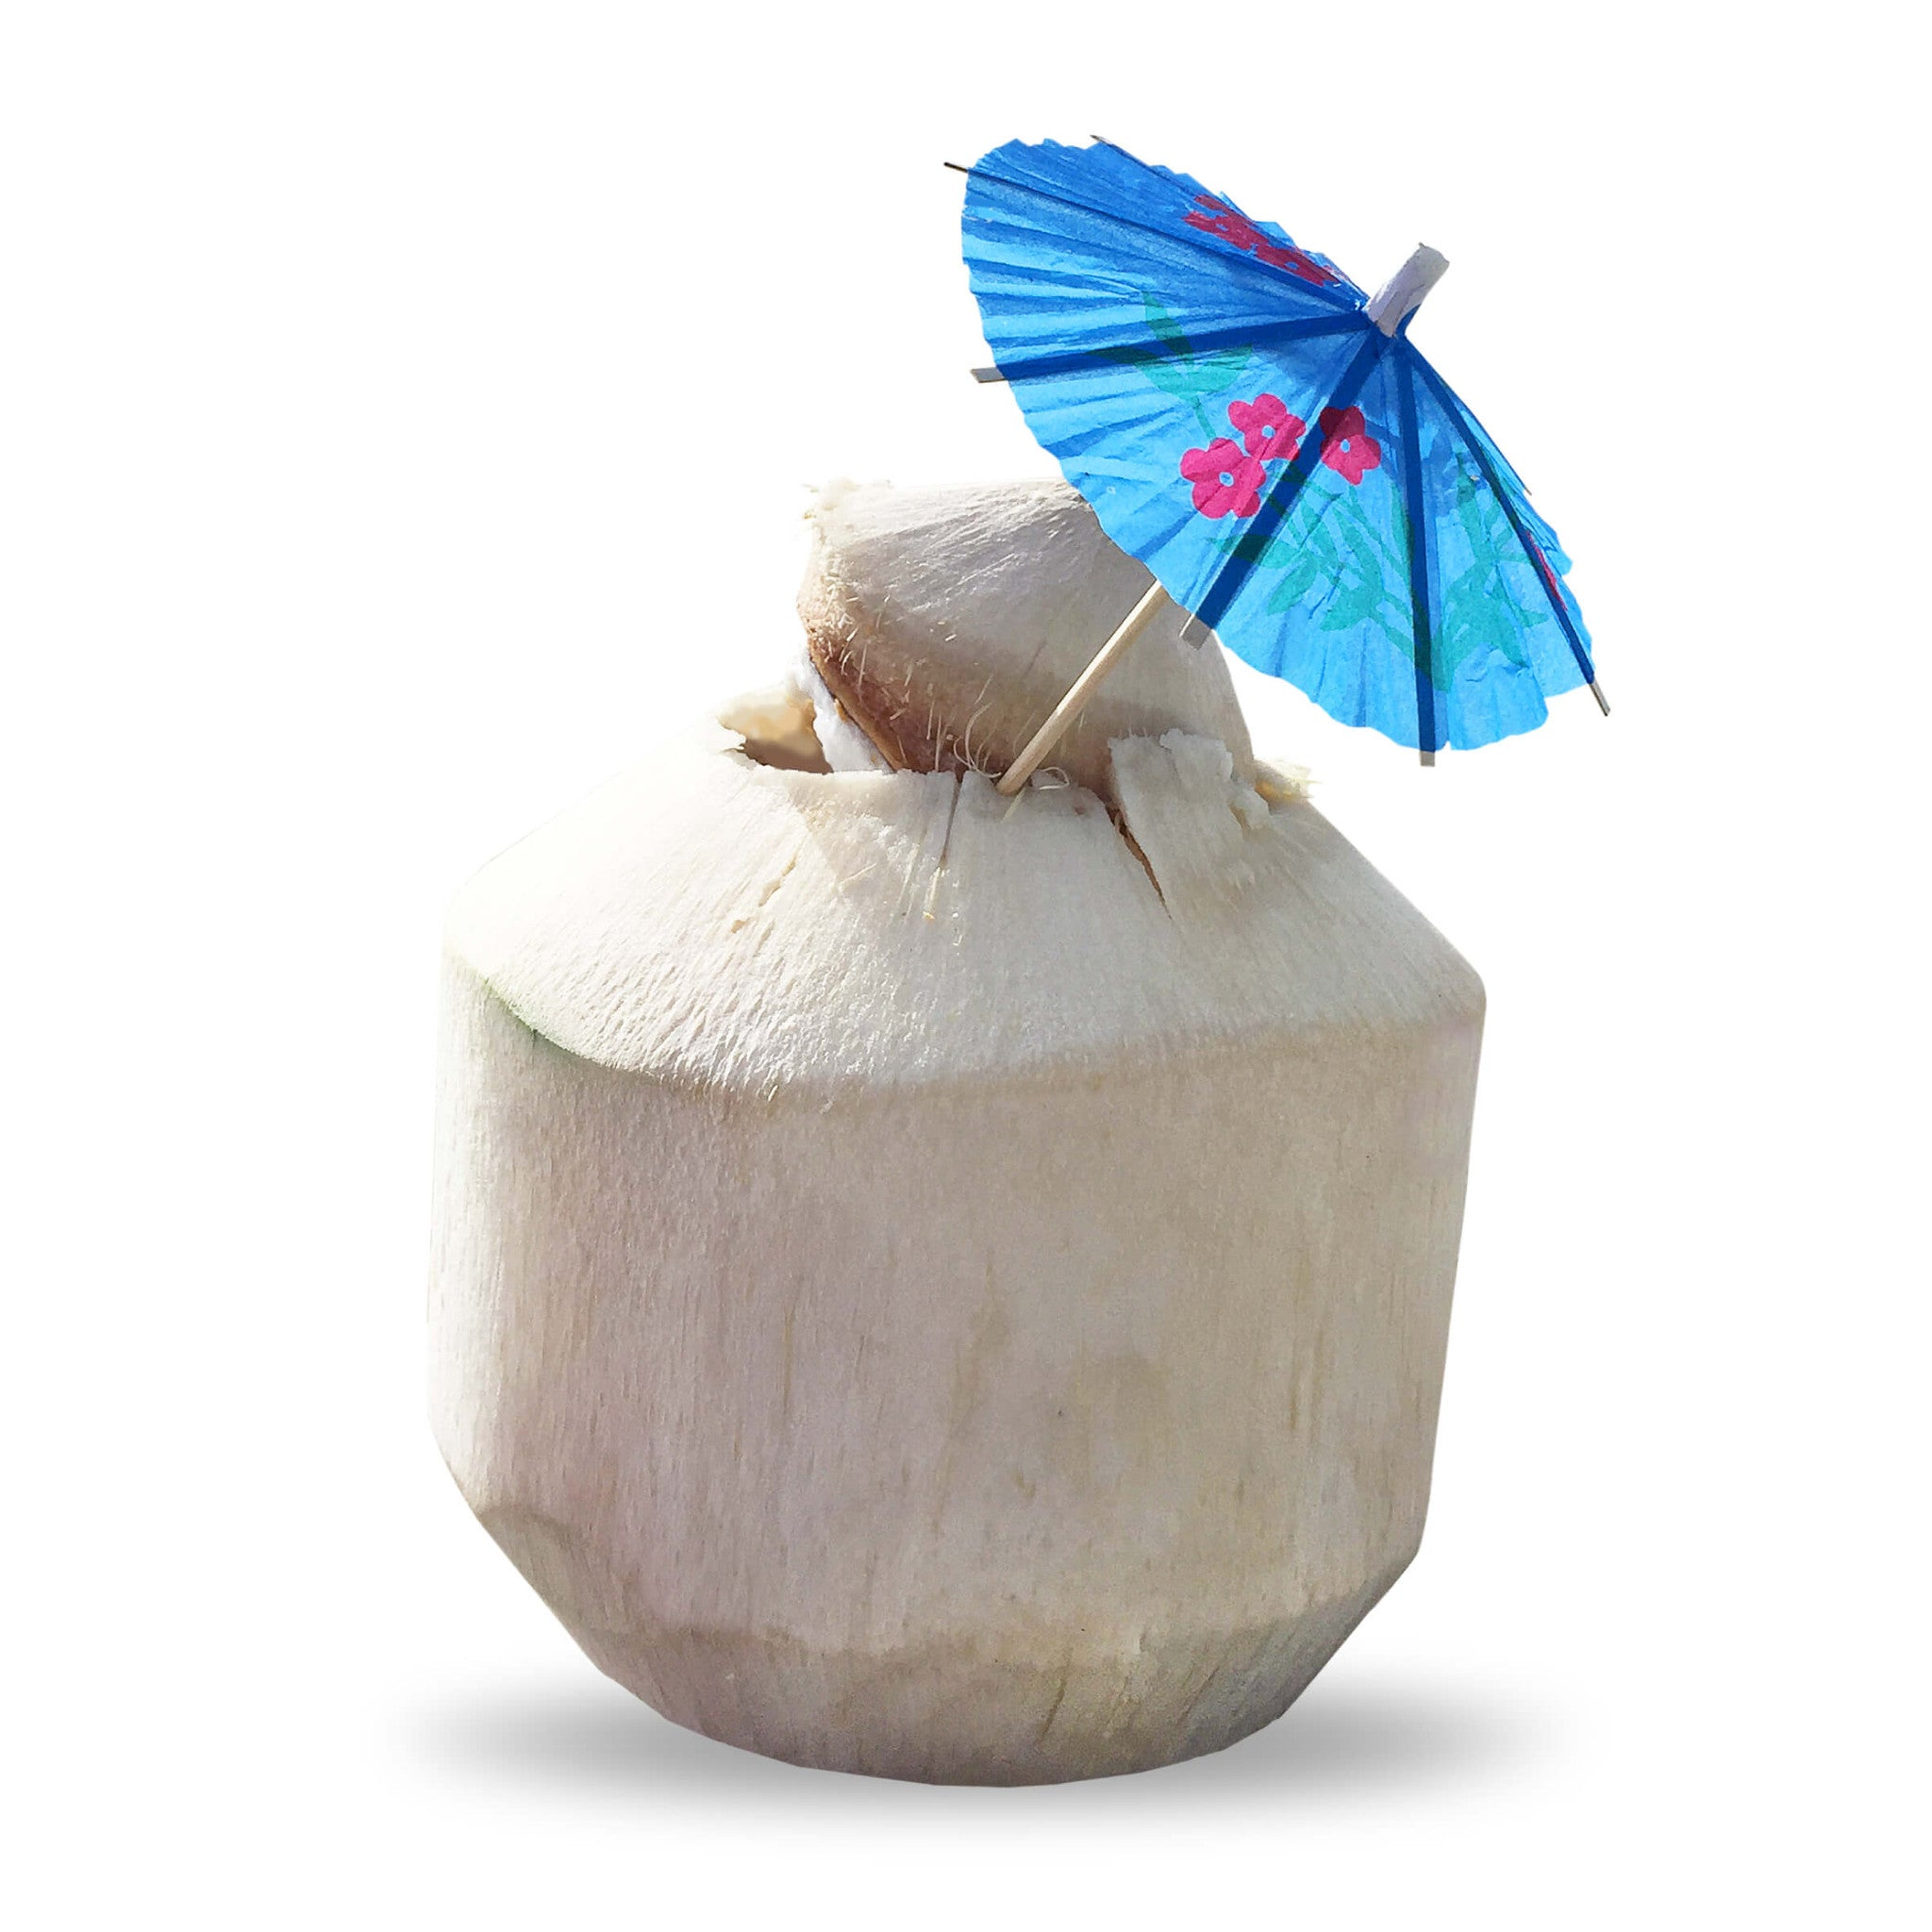 Tiny Coconut Umbrellas!